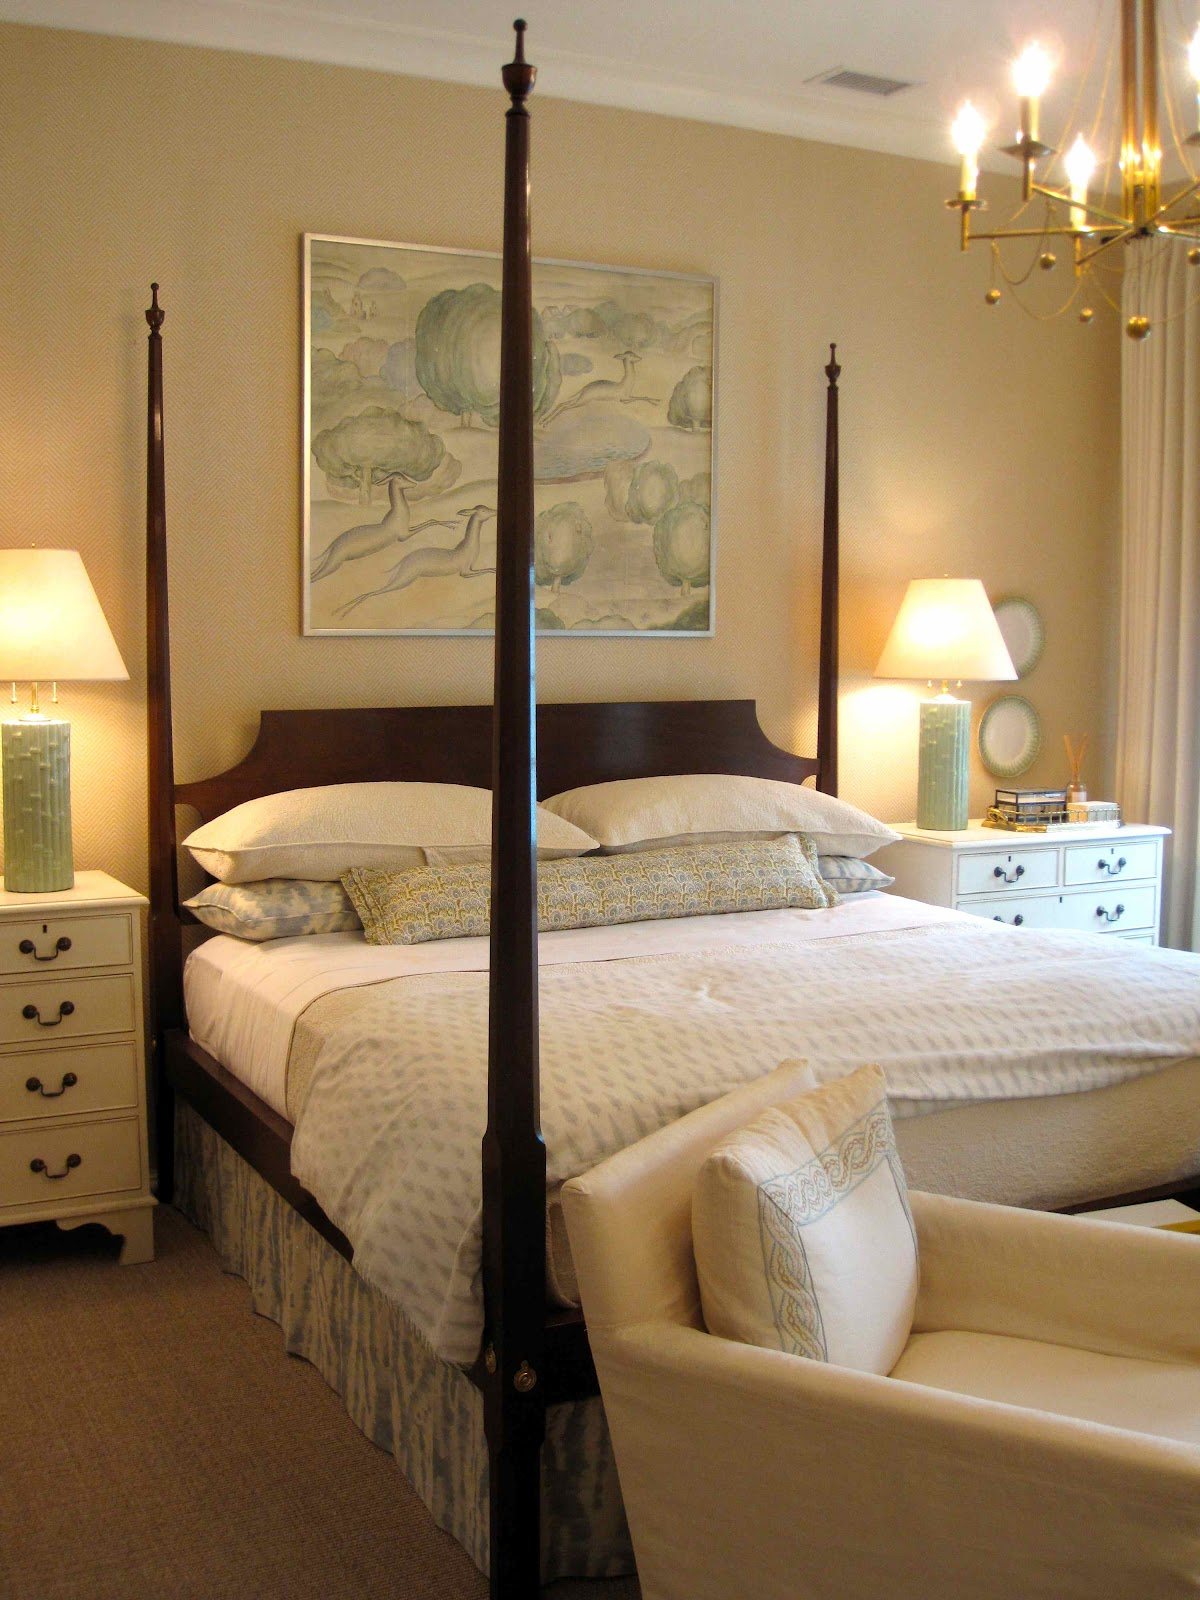 Tour of coastal living 39 s 2012 ultimate beach house for Beautiful beach bedroom decor